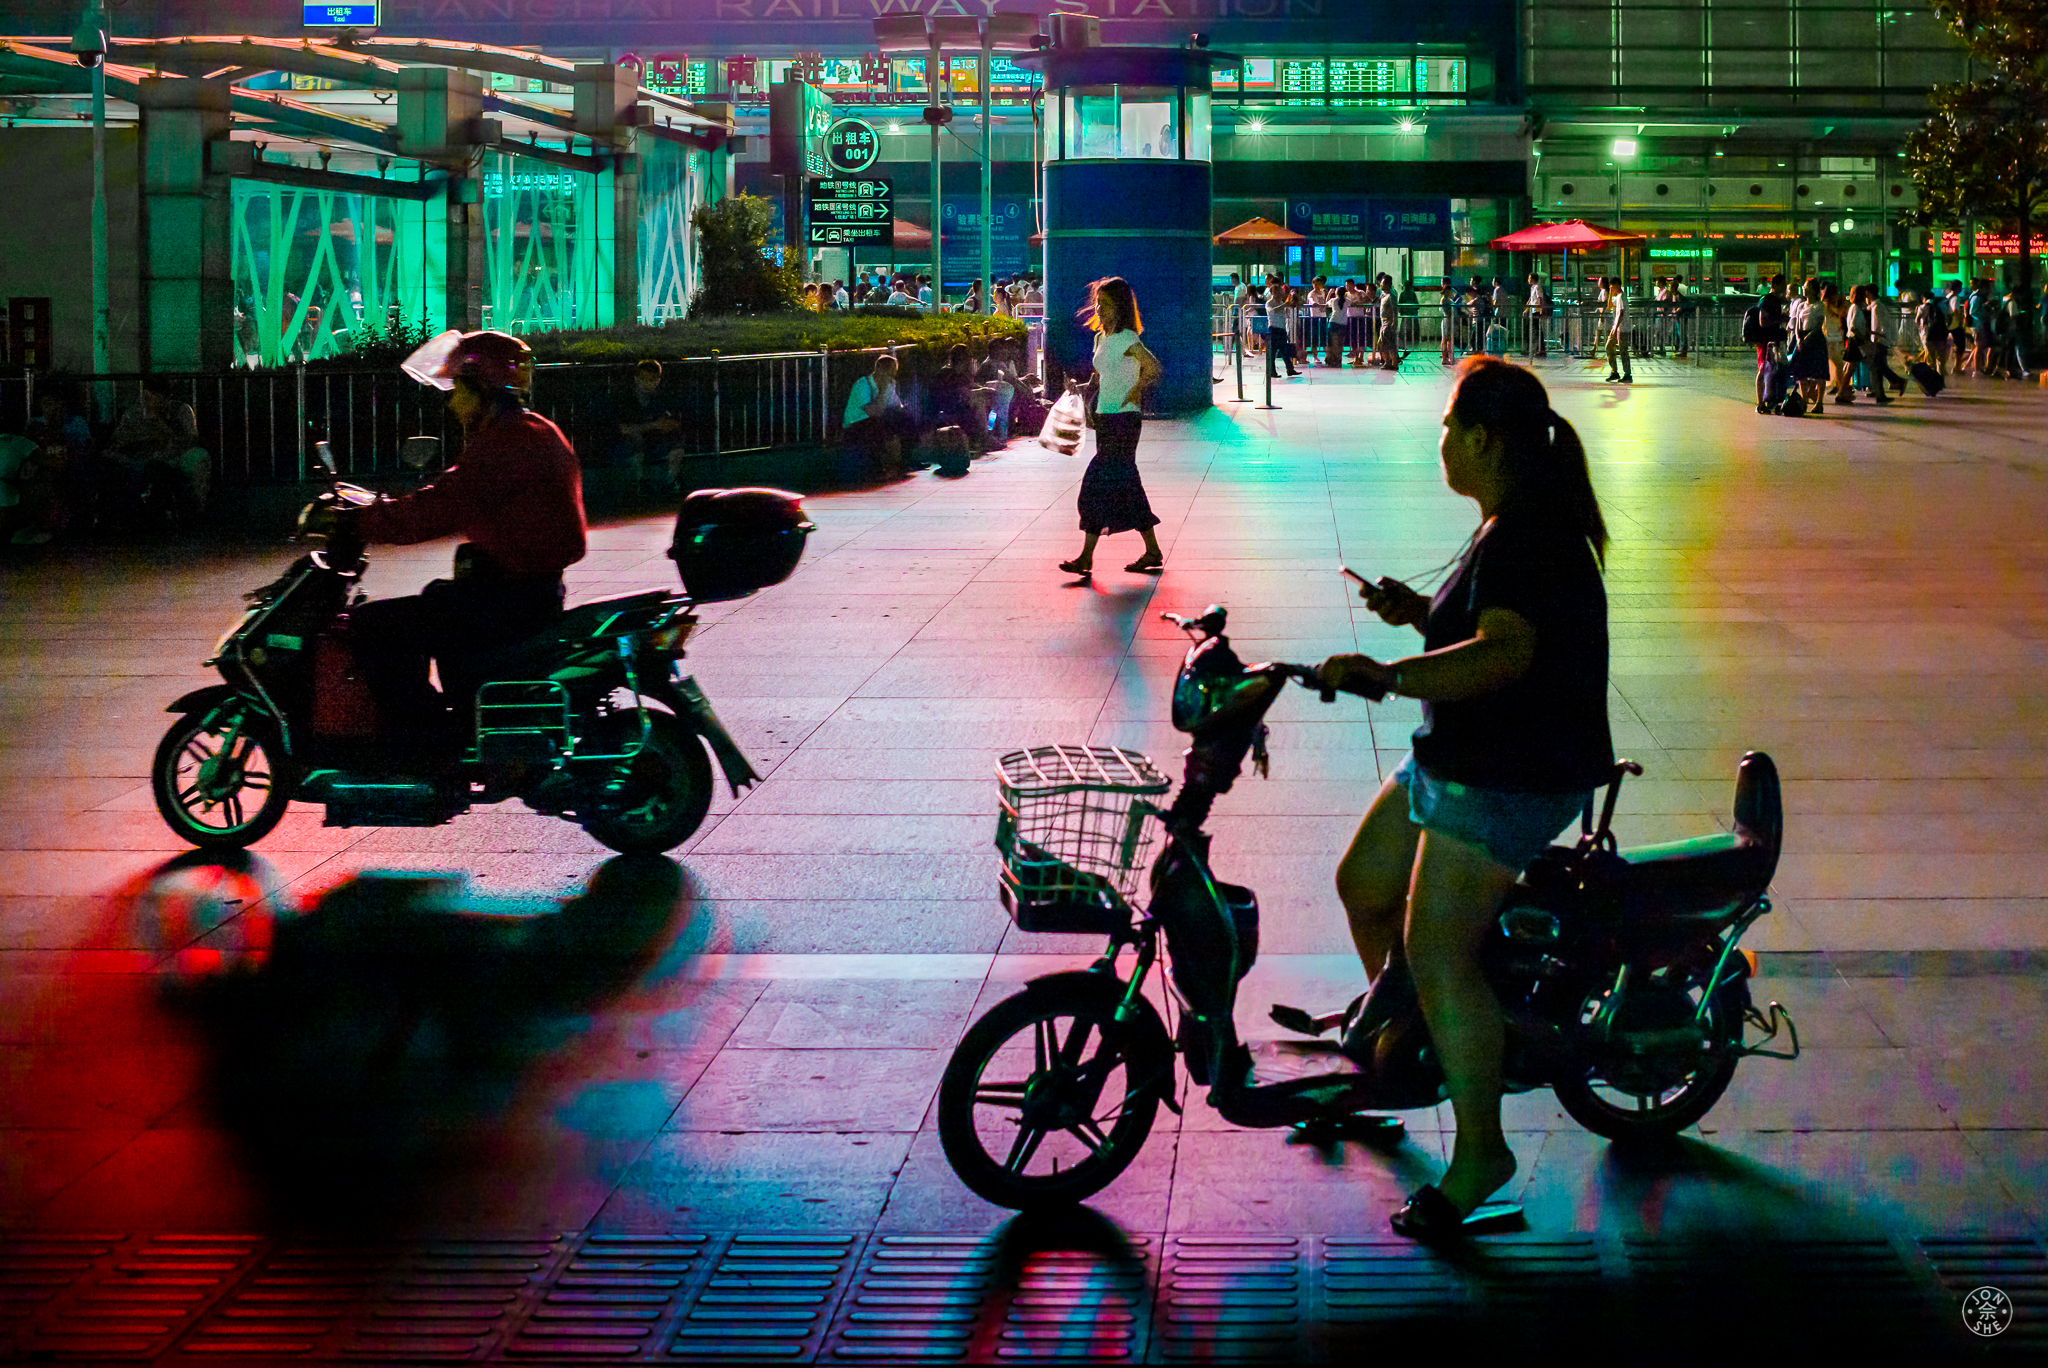 """""""Do Motorbikes Dream of Color Shadows?"""".  A view from the plaza in front of a railway station. There was a football field-sized LED screen on the facade of the station playing advertisements that cast interesting colors and shadows of passerby and traffic on the plaza.Shanghai, China. August 2016. © Jon She.Leica M-P (Typ 240), Leica Summilux-M 35mm f/1.4 ASPH (FLE)."""